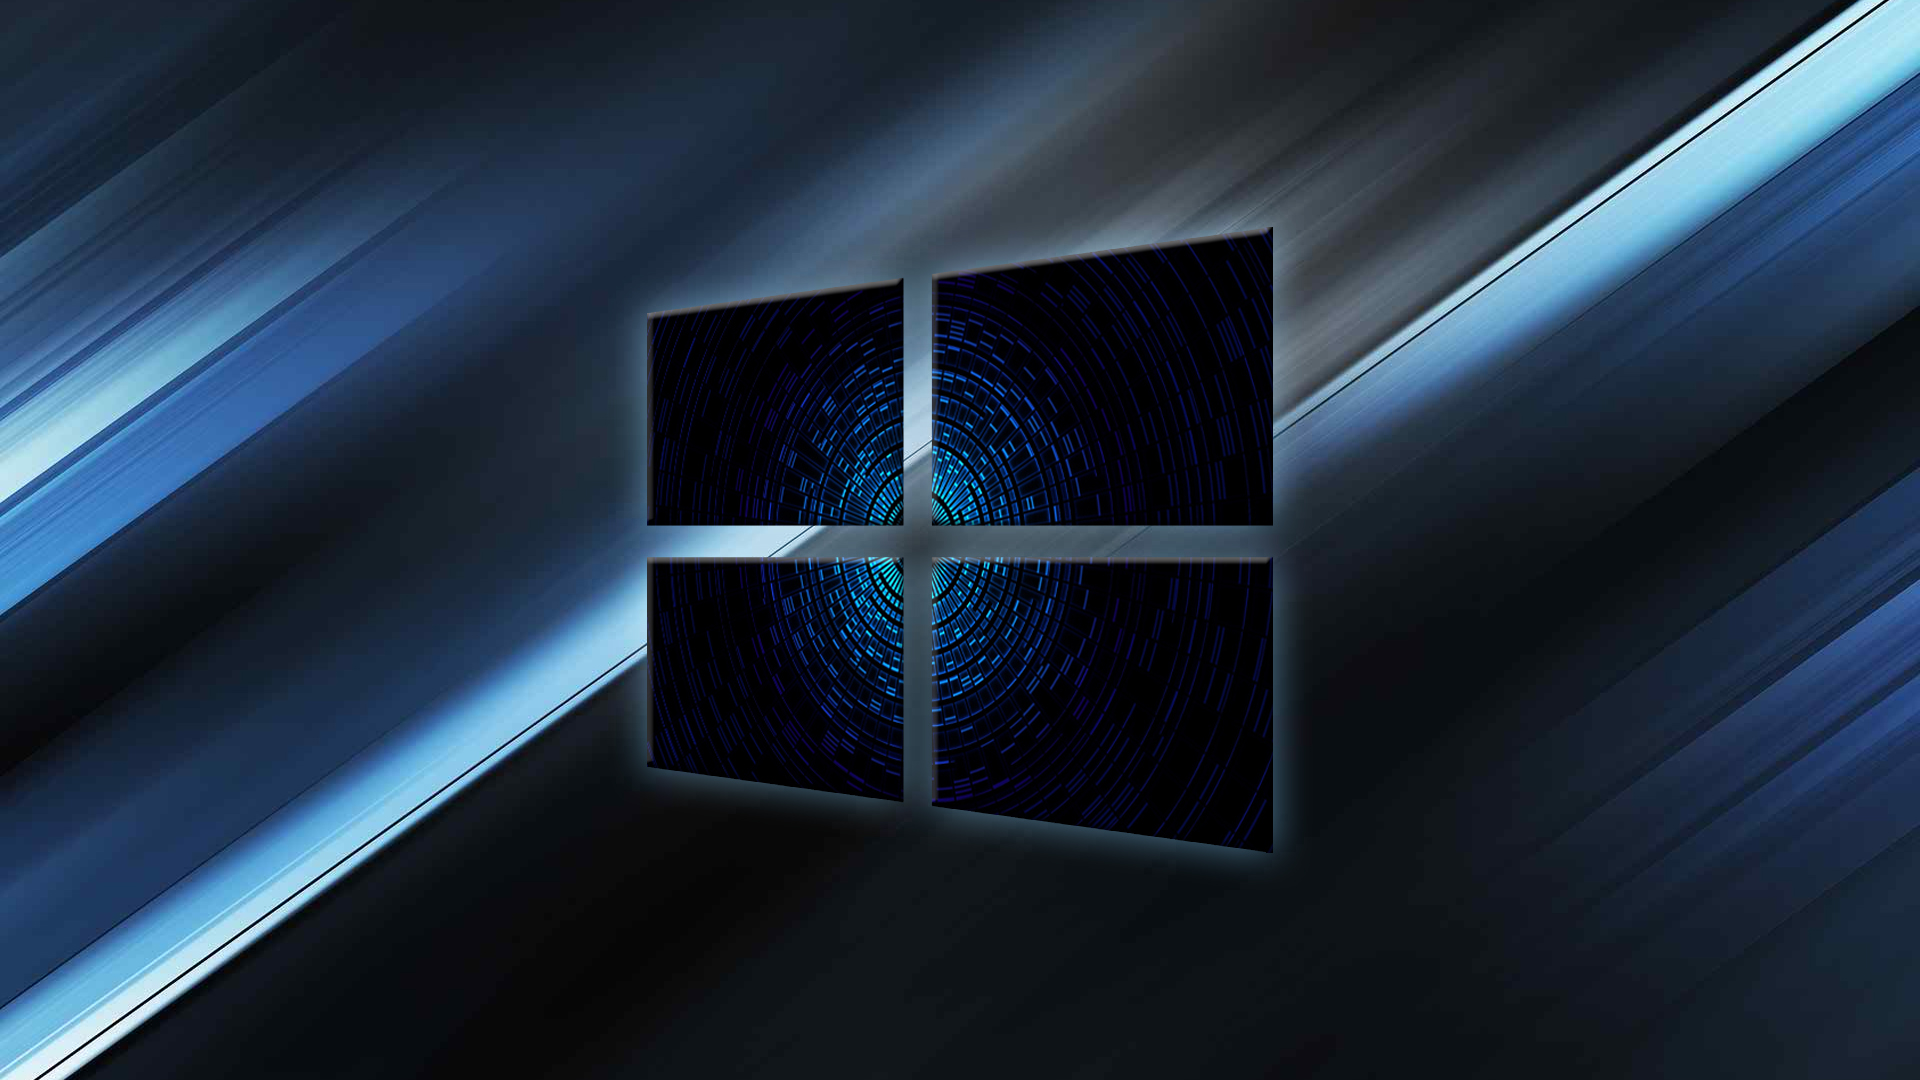 Core functions windows 10 wallpaper windows 10 logo hd for High quality windows